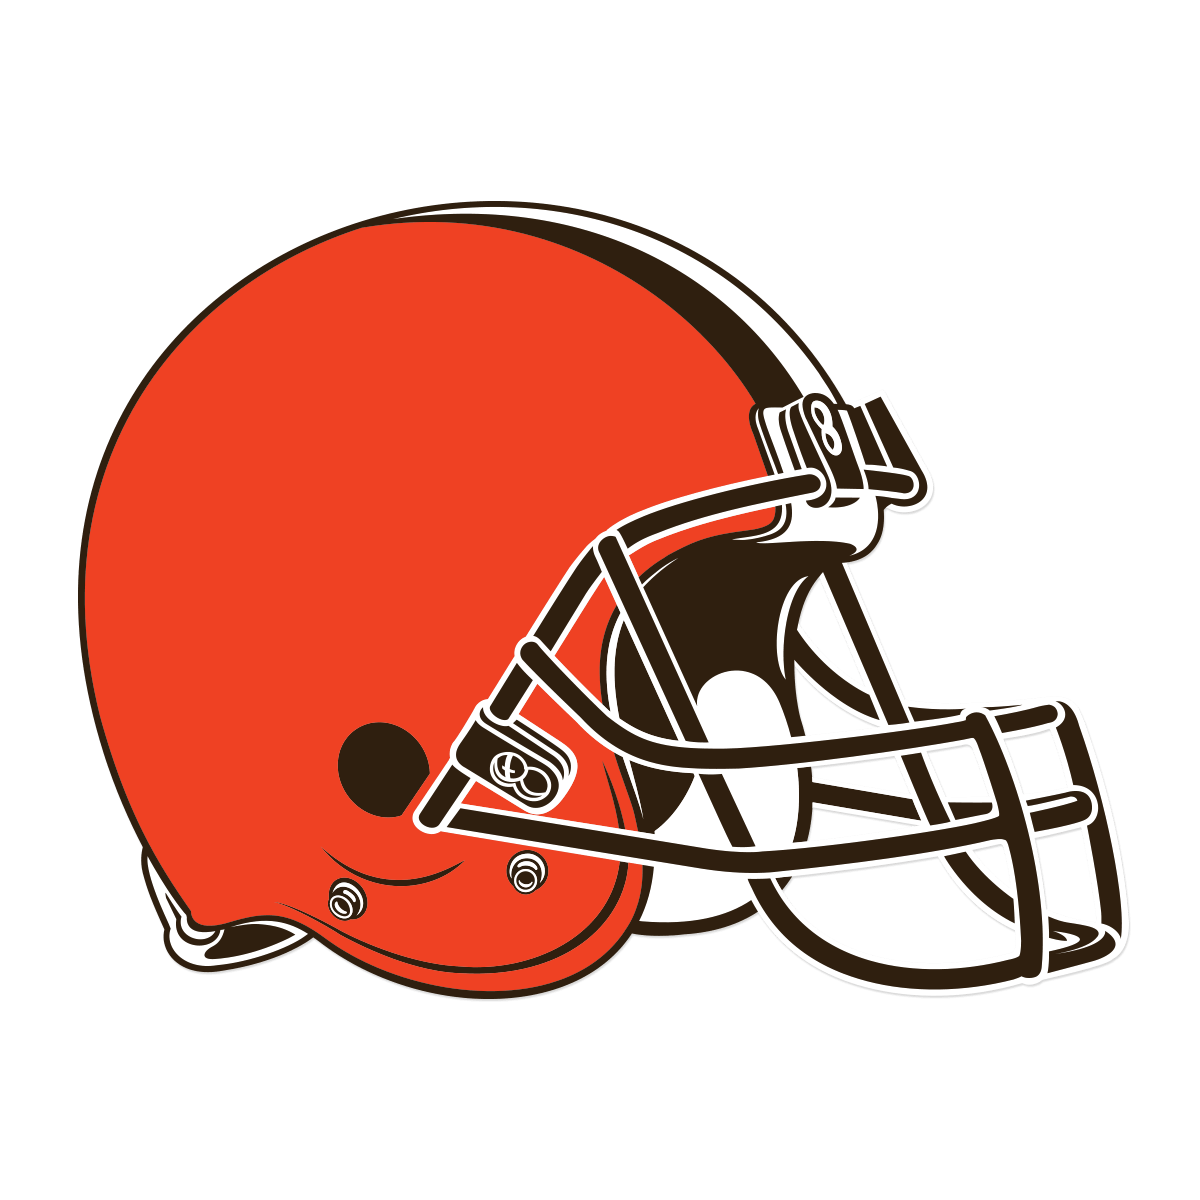 Football helmet front texans clipart banner black and white stock 2015 vs 2014 Browns logo animated GIF comparison : nfl banner black and white stock